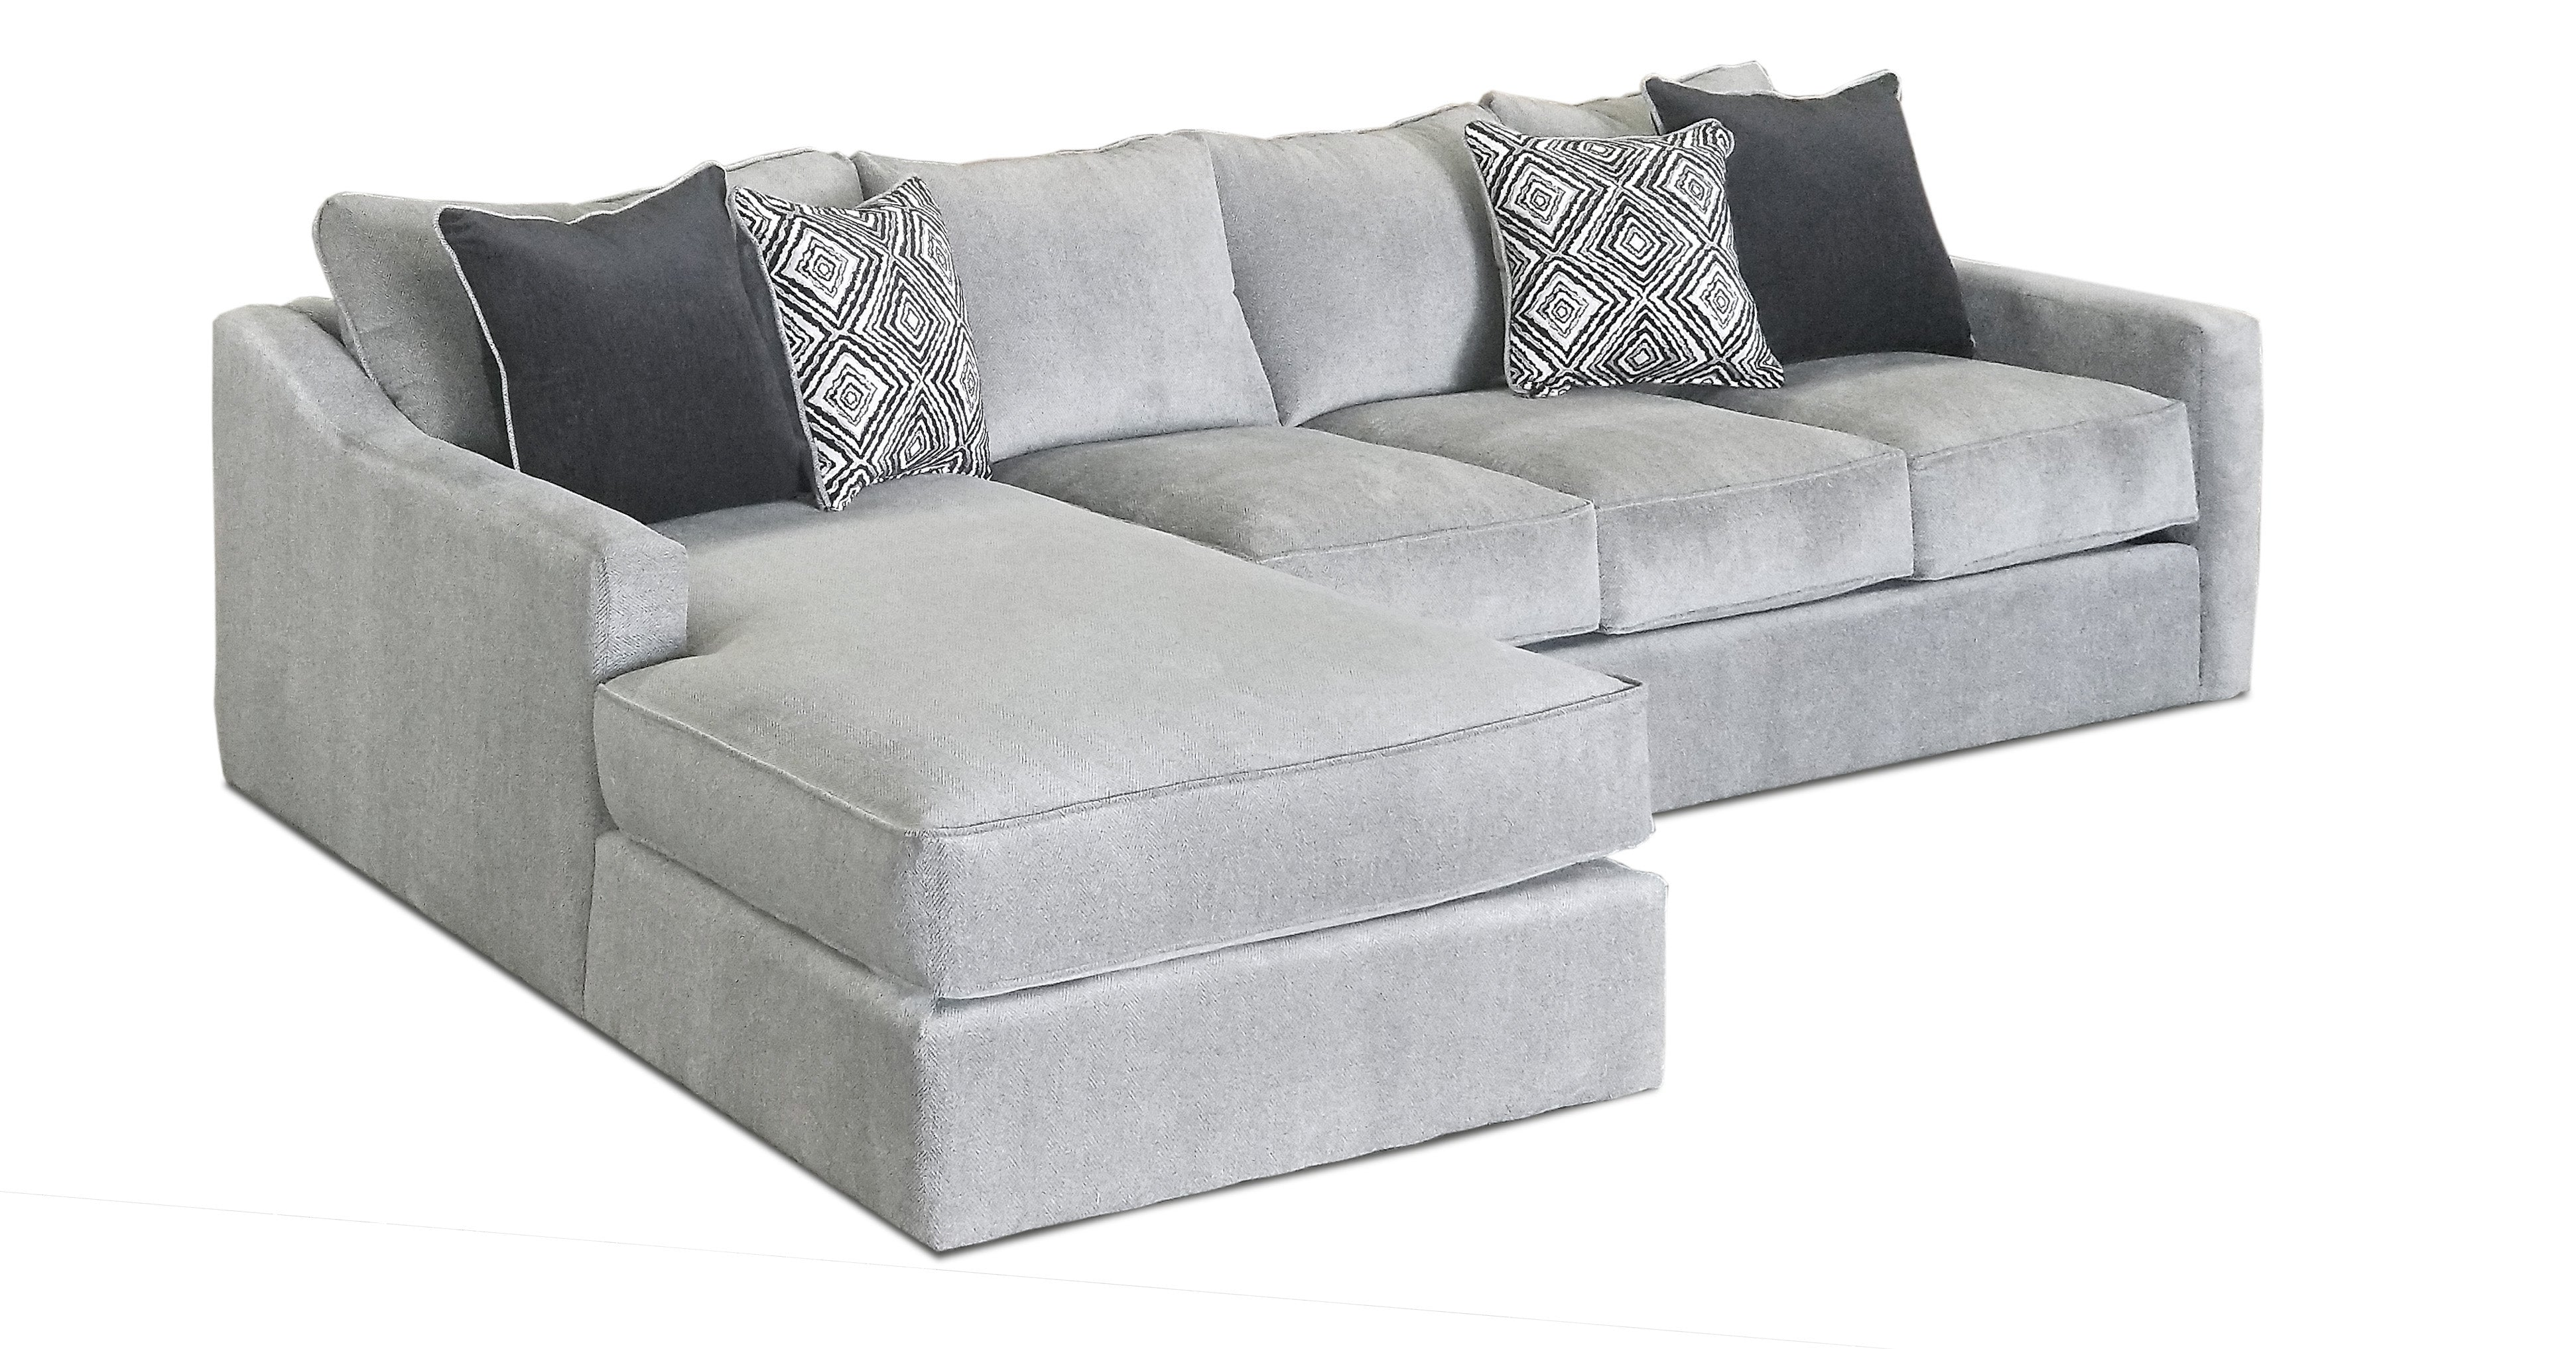 Excellent Daisy Sectional Sofa Bed Evergreenethics Interior Chair Design Evergreenethicsorg